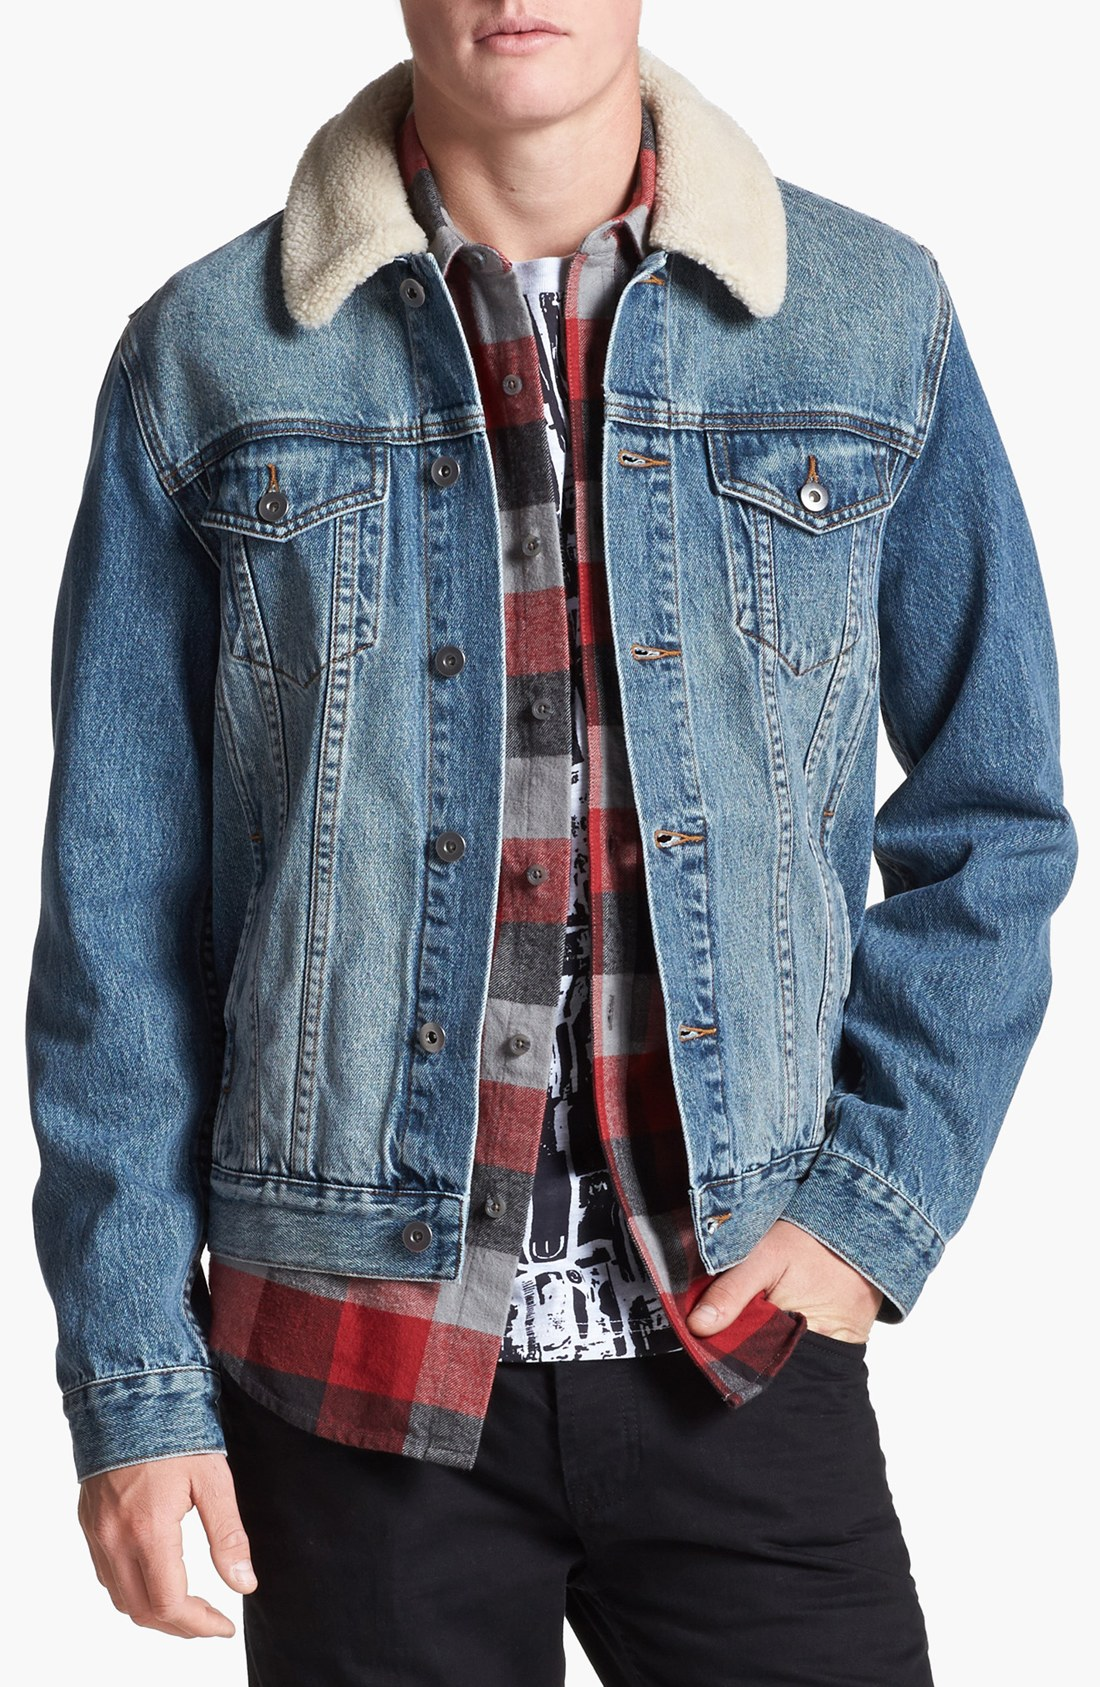 Men's Jackets + Coats Shop men's coats & jackets at Forever Choose from a wide range of styles from windbreakers, bomber jackets, denim jackets, blazers, topcoats, and track jackets.